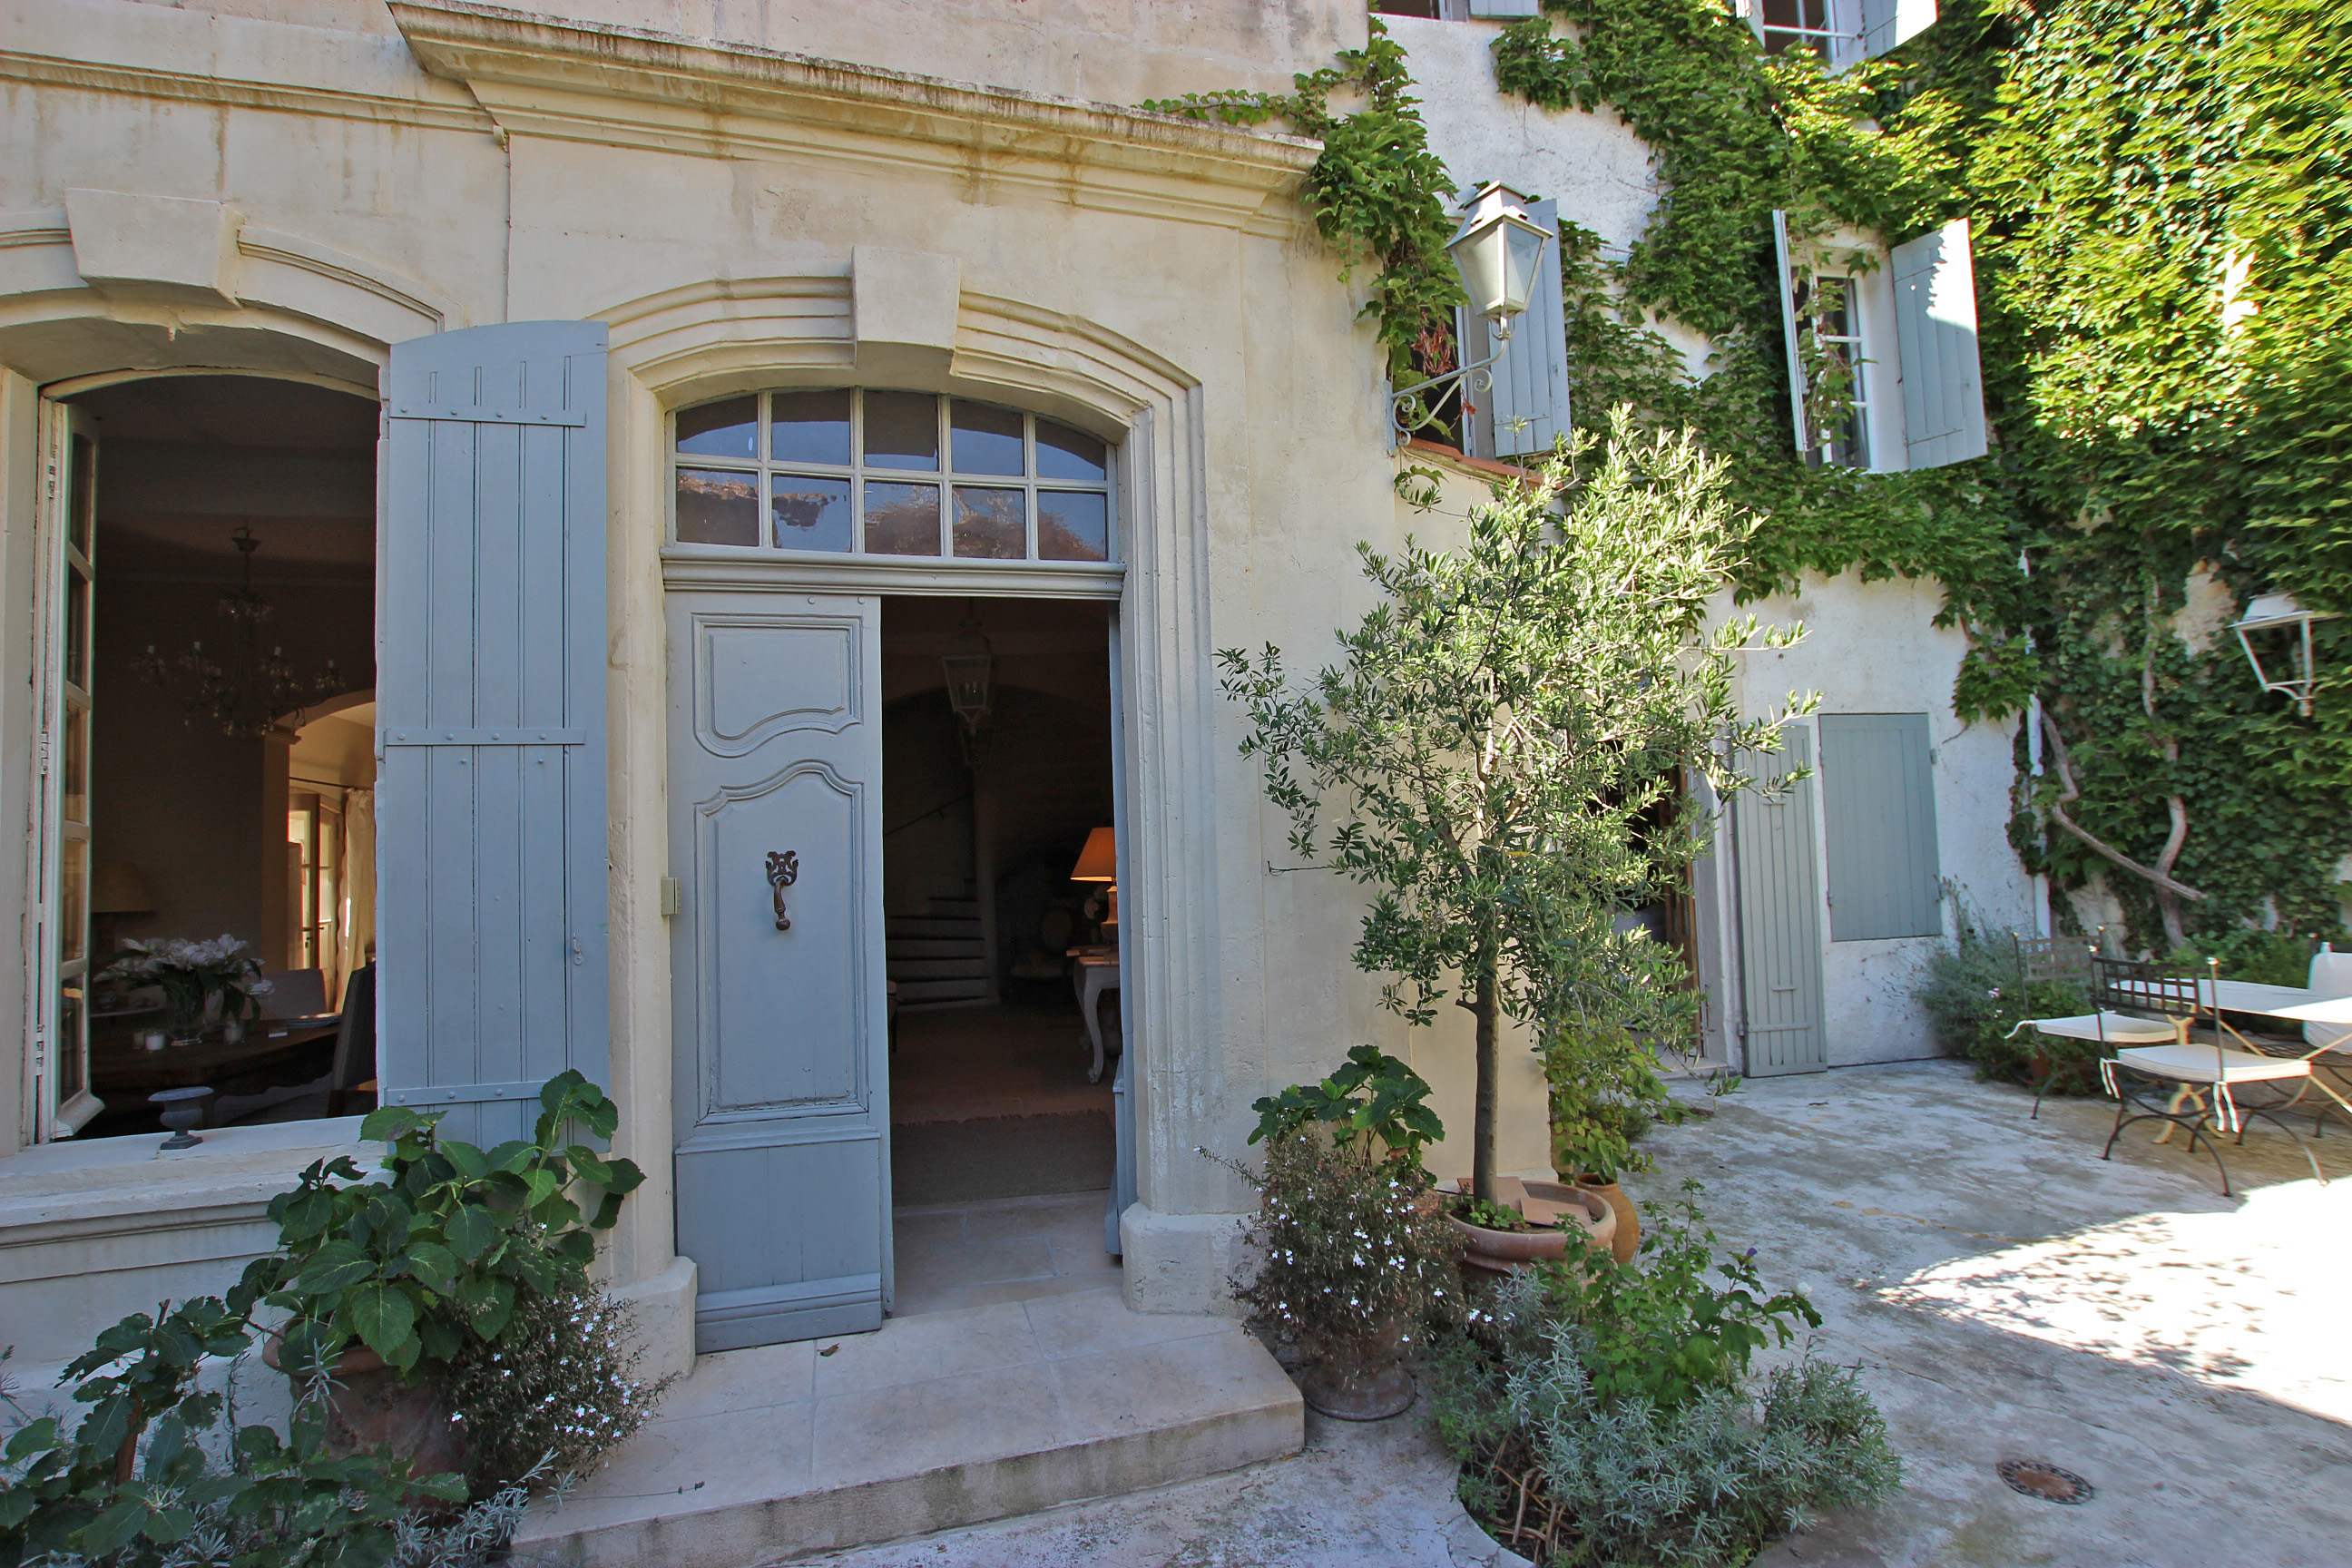 Townhouse for Sale at delightful townhouse from 1745 in the heart of fontvieille- Provence Fontvieille, Provence-Alpes-Cote D'Azur 13890 France